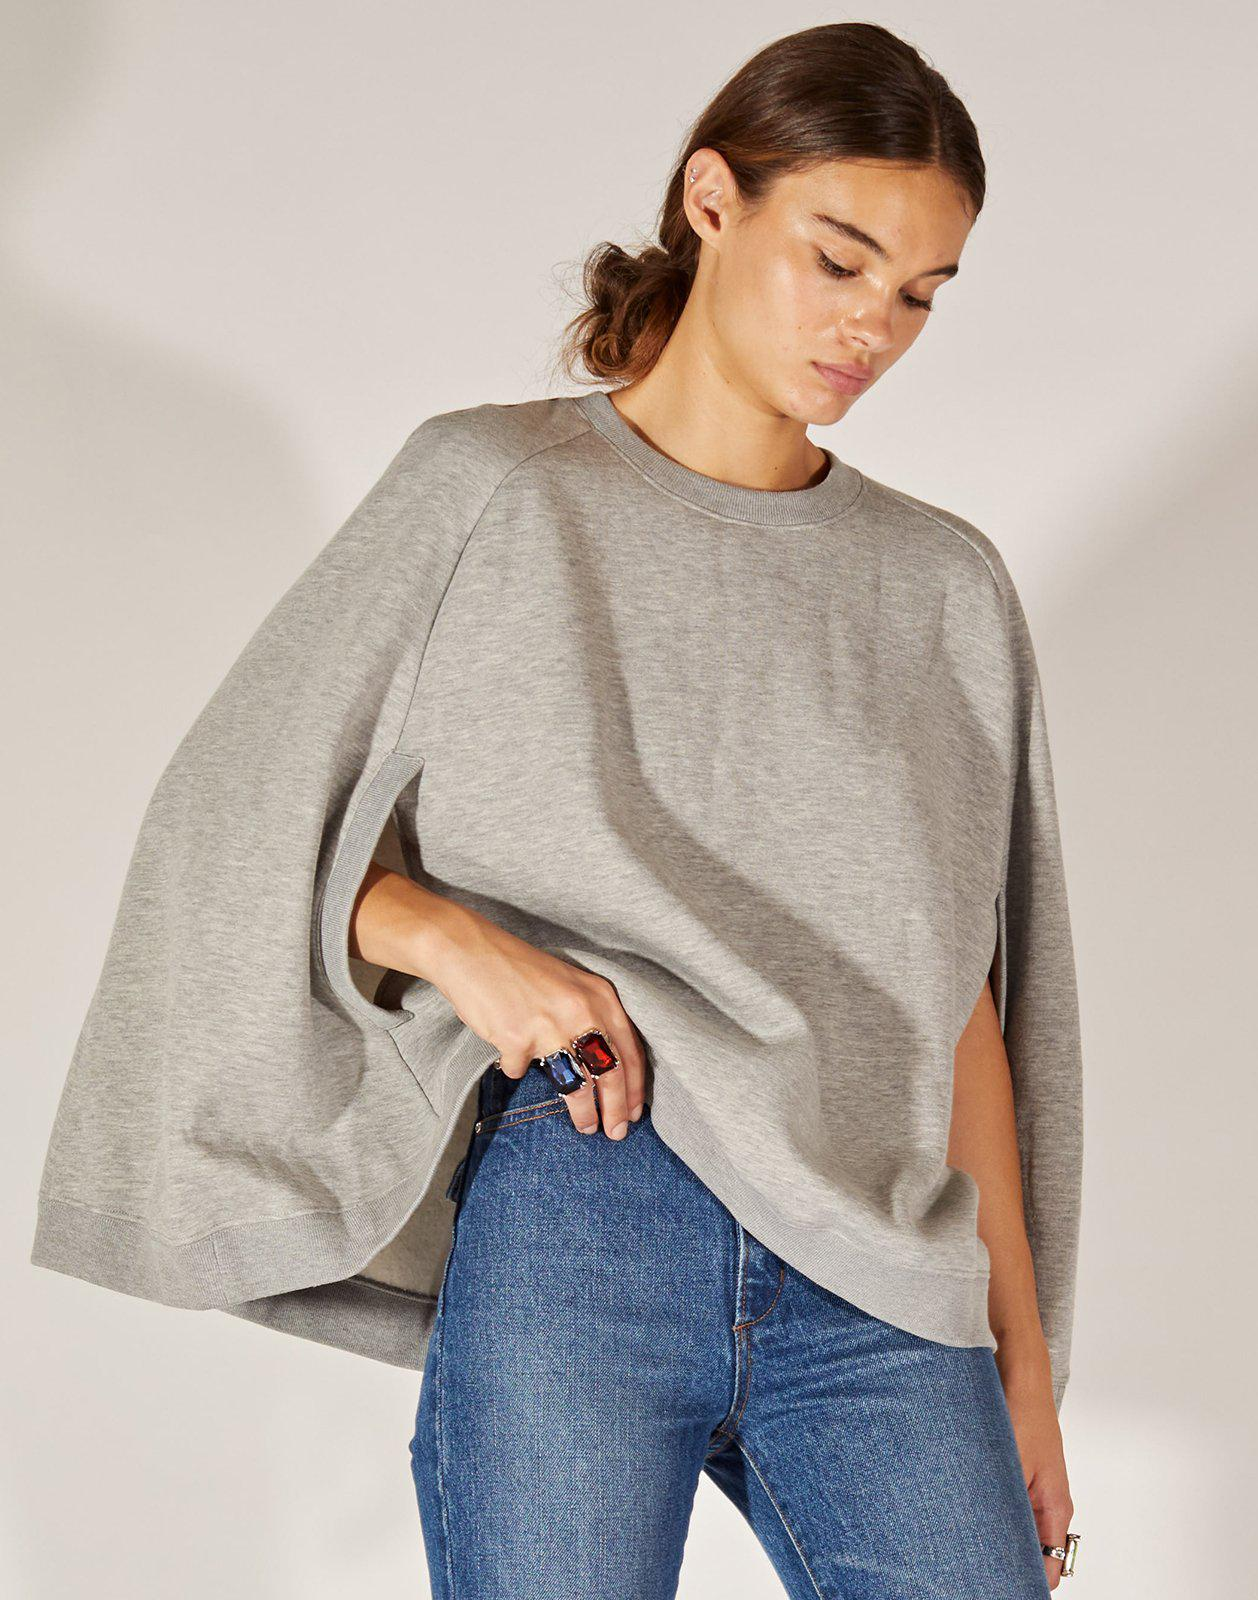 The Capelet